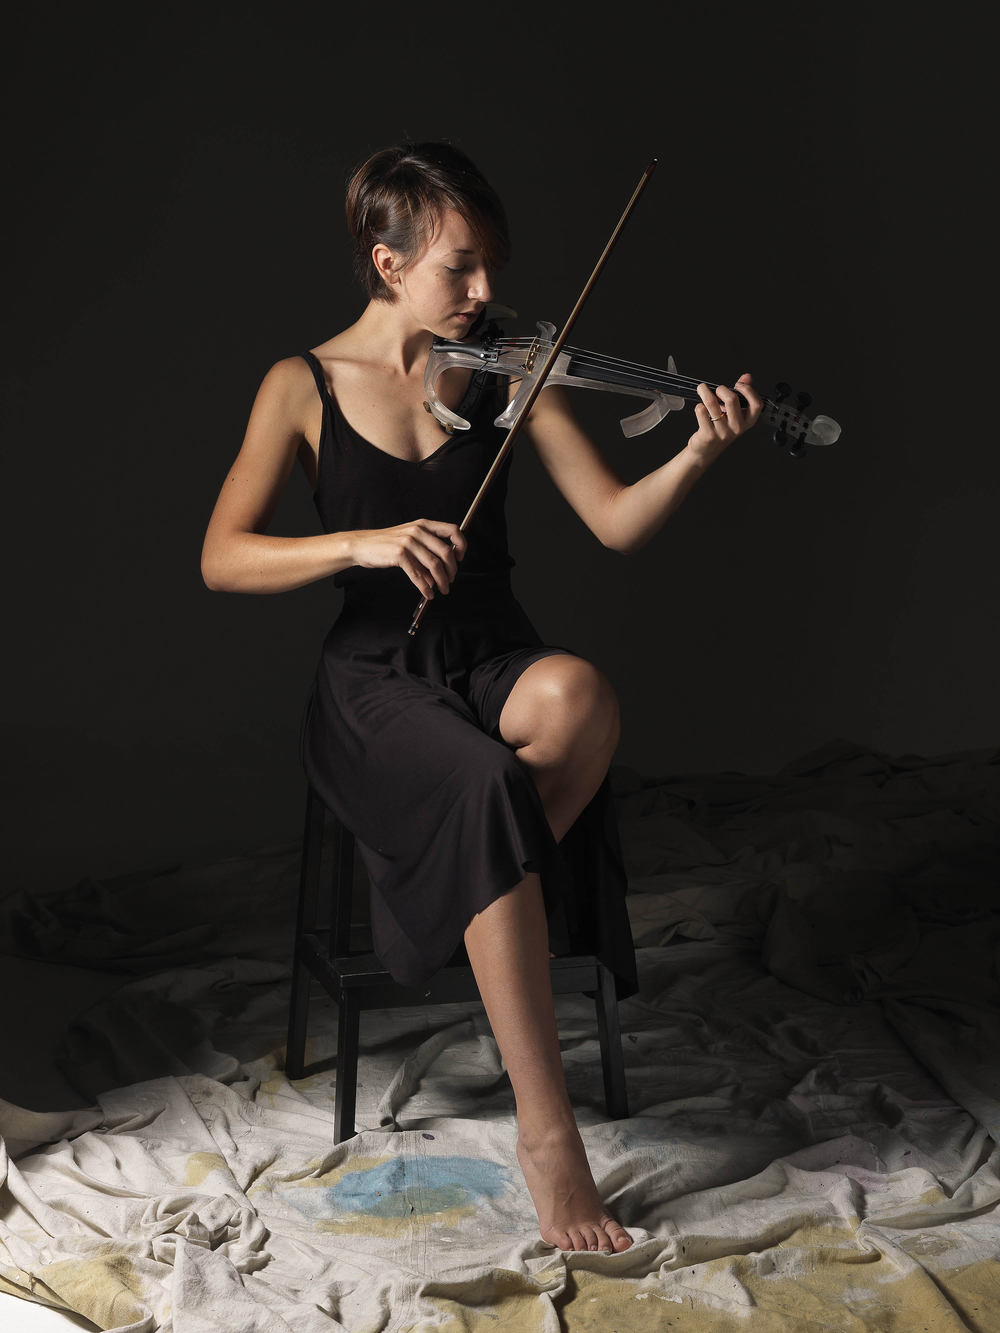 A Giocherellare (Violin Sculpture)